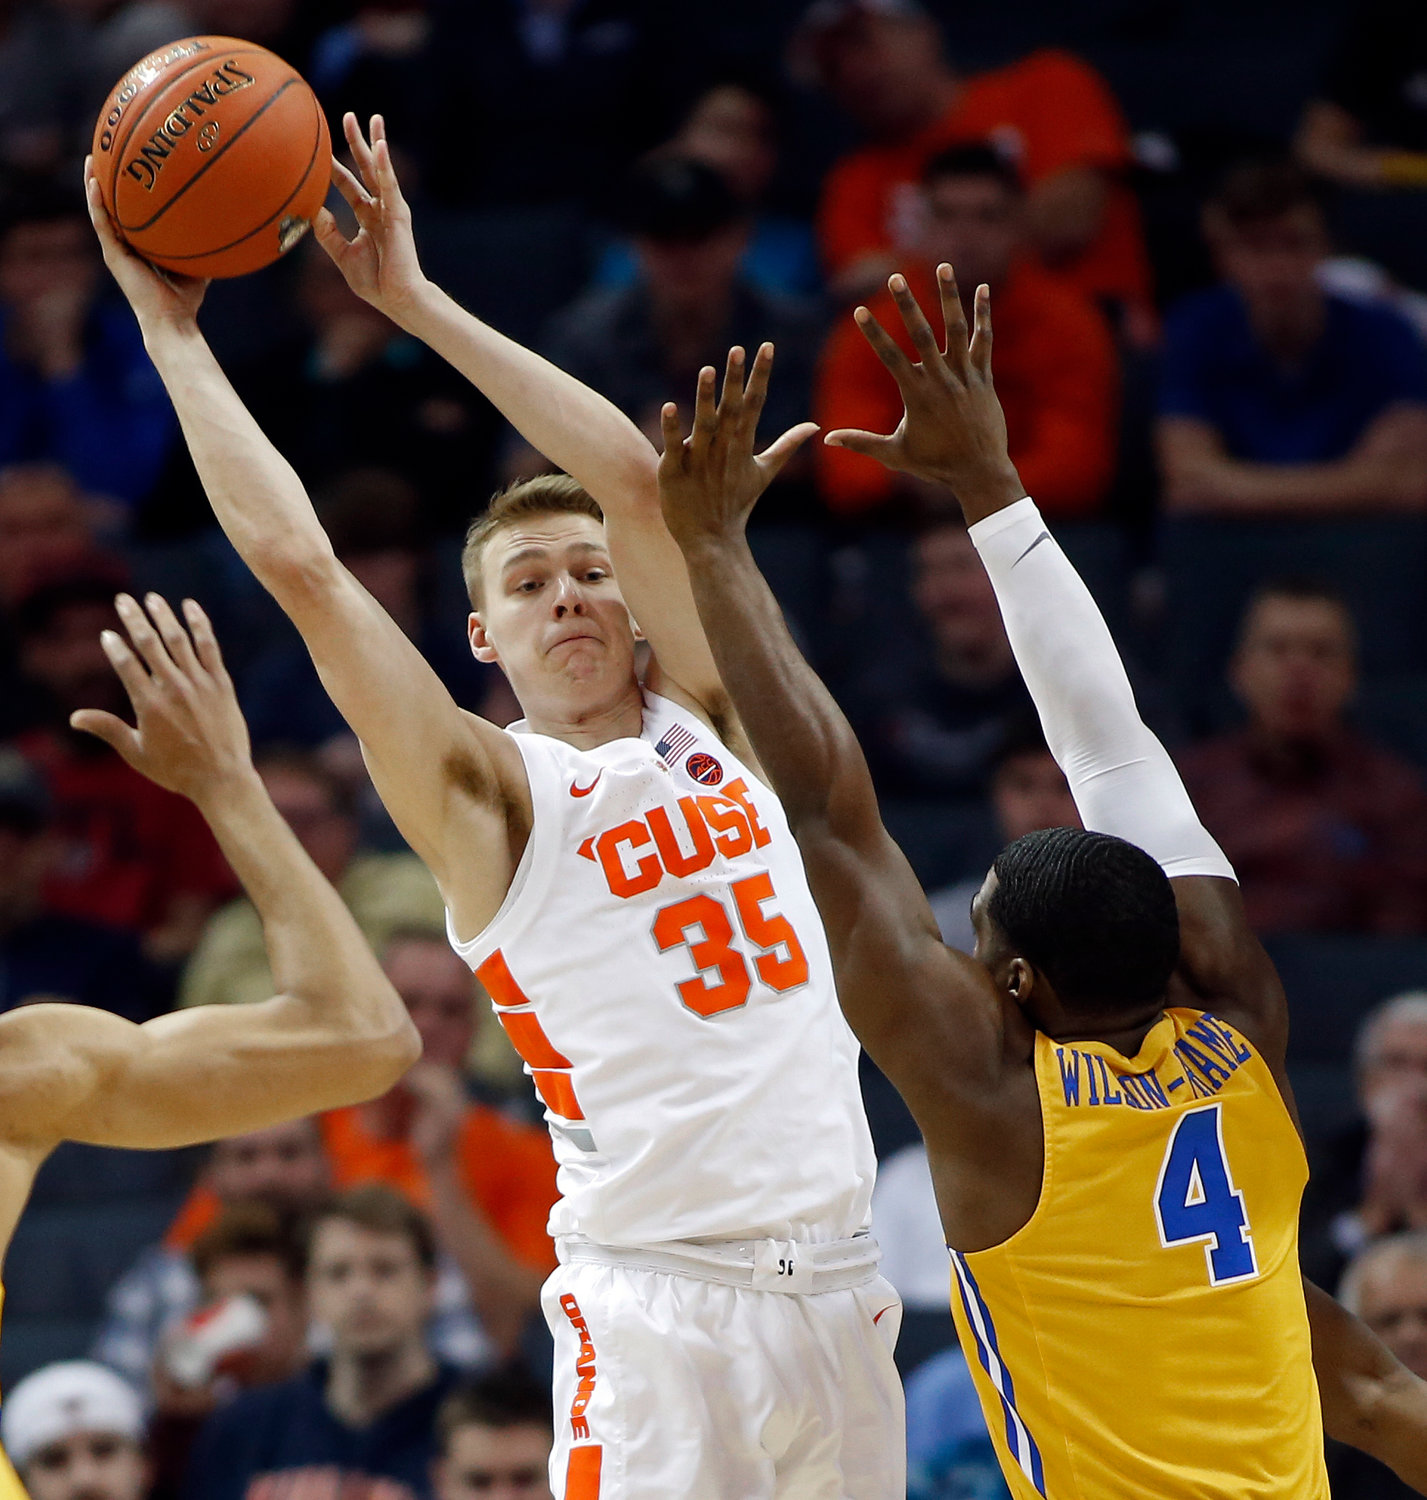 LOOKING TO PASS — Syracuse's Buddy Boeheim looks to pass the ball as Pittsburgh's Jared Wilson-Frame defends during the first half of Wednesday night's ACC Tournament second-round game in Charlotte, N.C. Boeheim had a team-high 20 points for the Orange in their 73-59 victory.